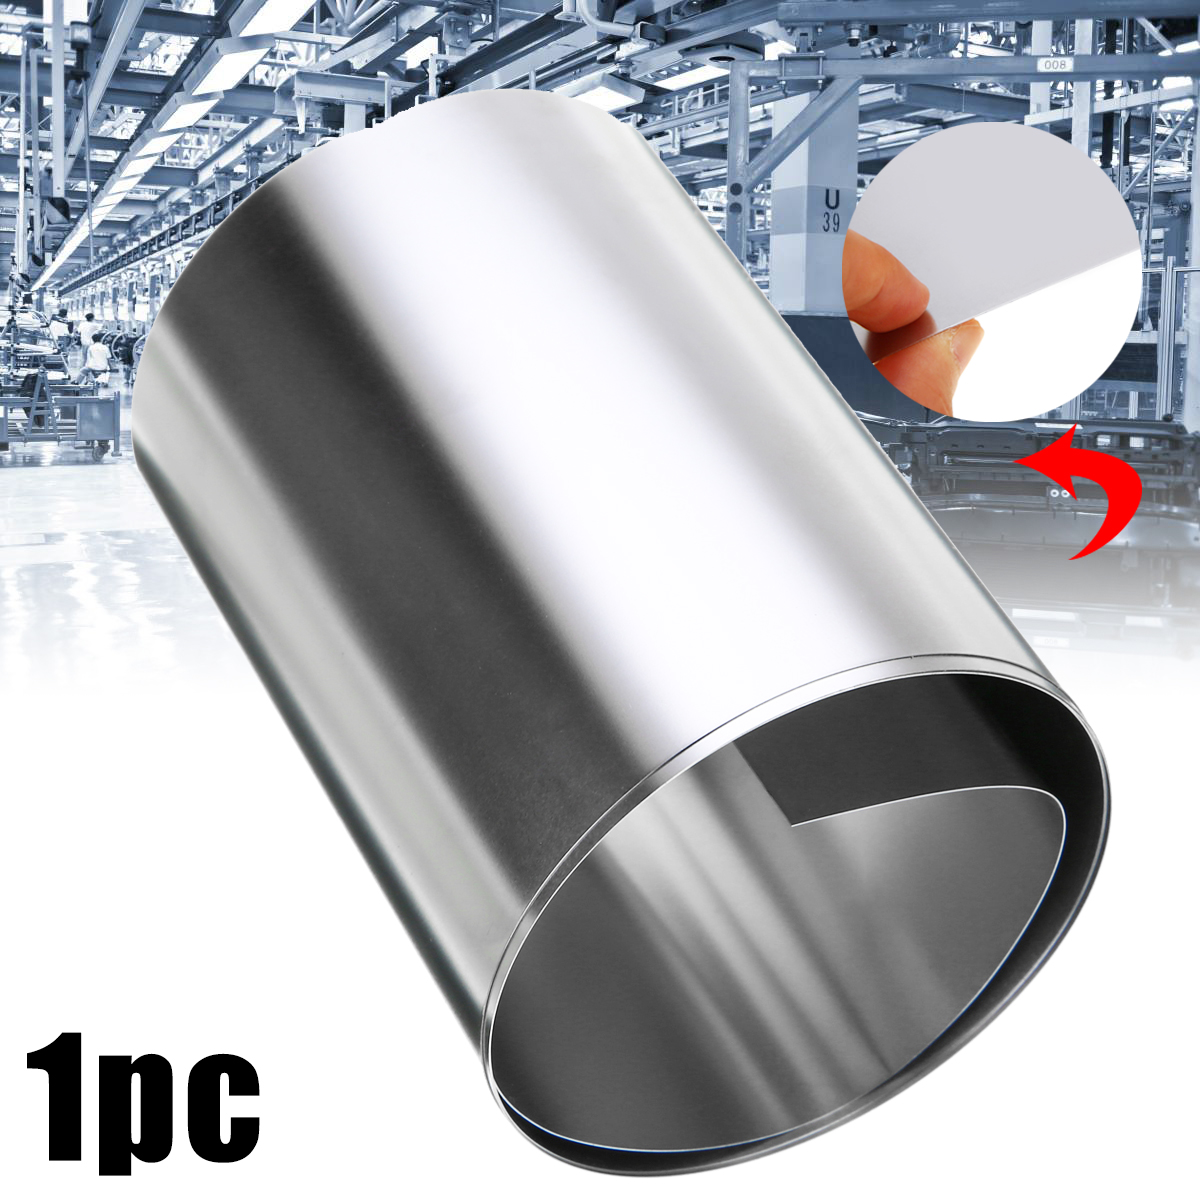 1pc Silver 304 Stainless Steel Fine Plate Sheet Foil for Electronic Equipment Precision Machinery Mechanical Parts Using